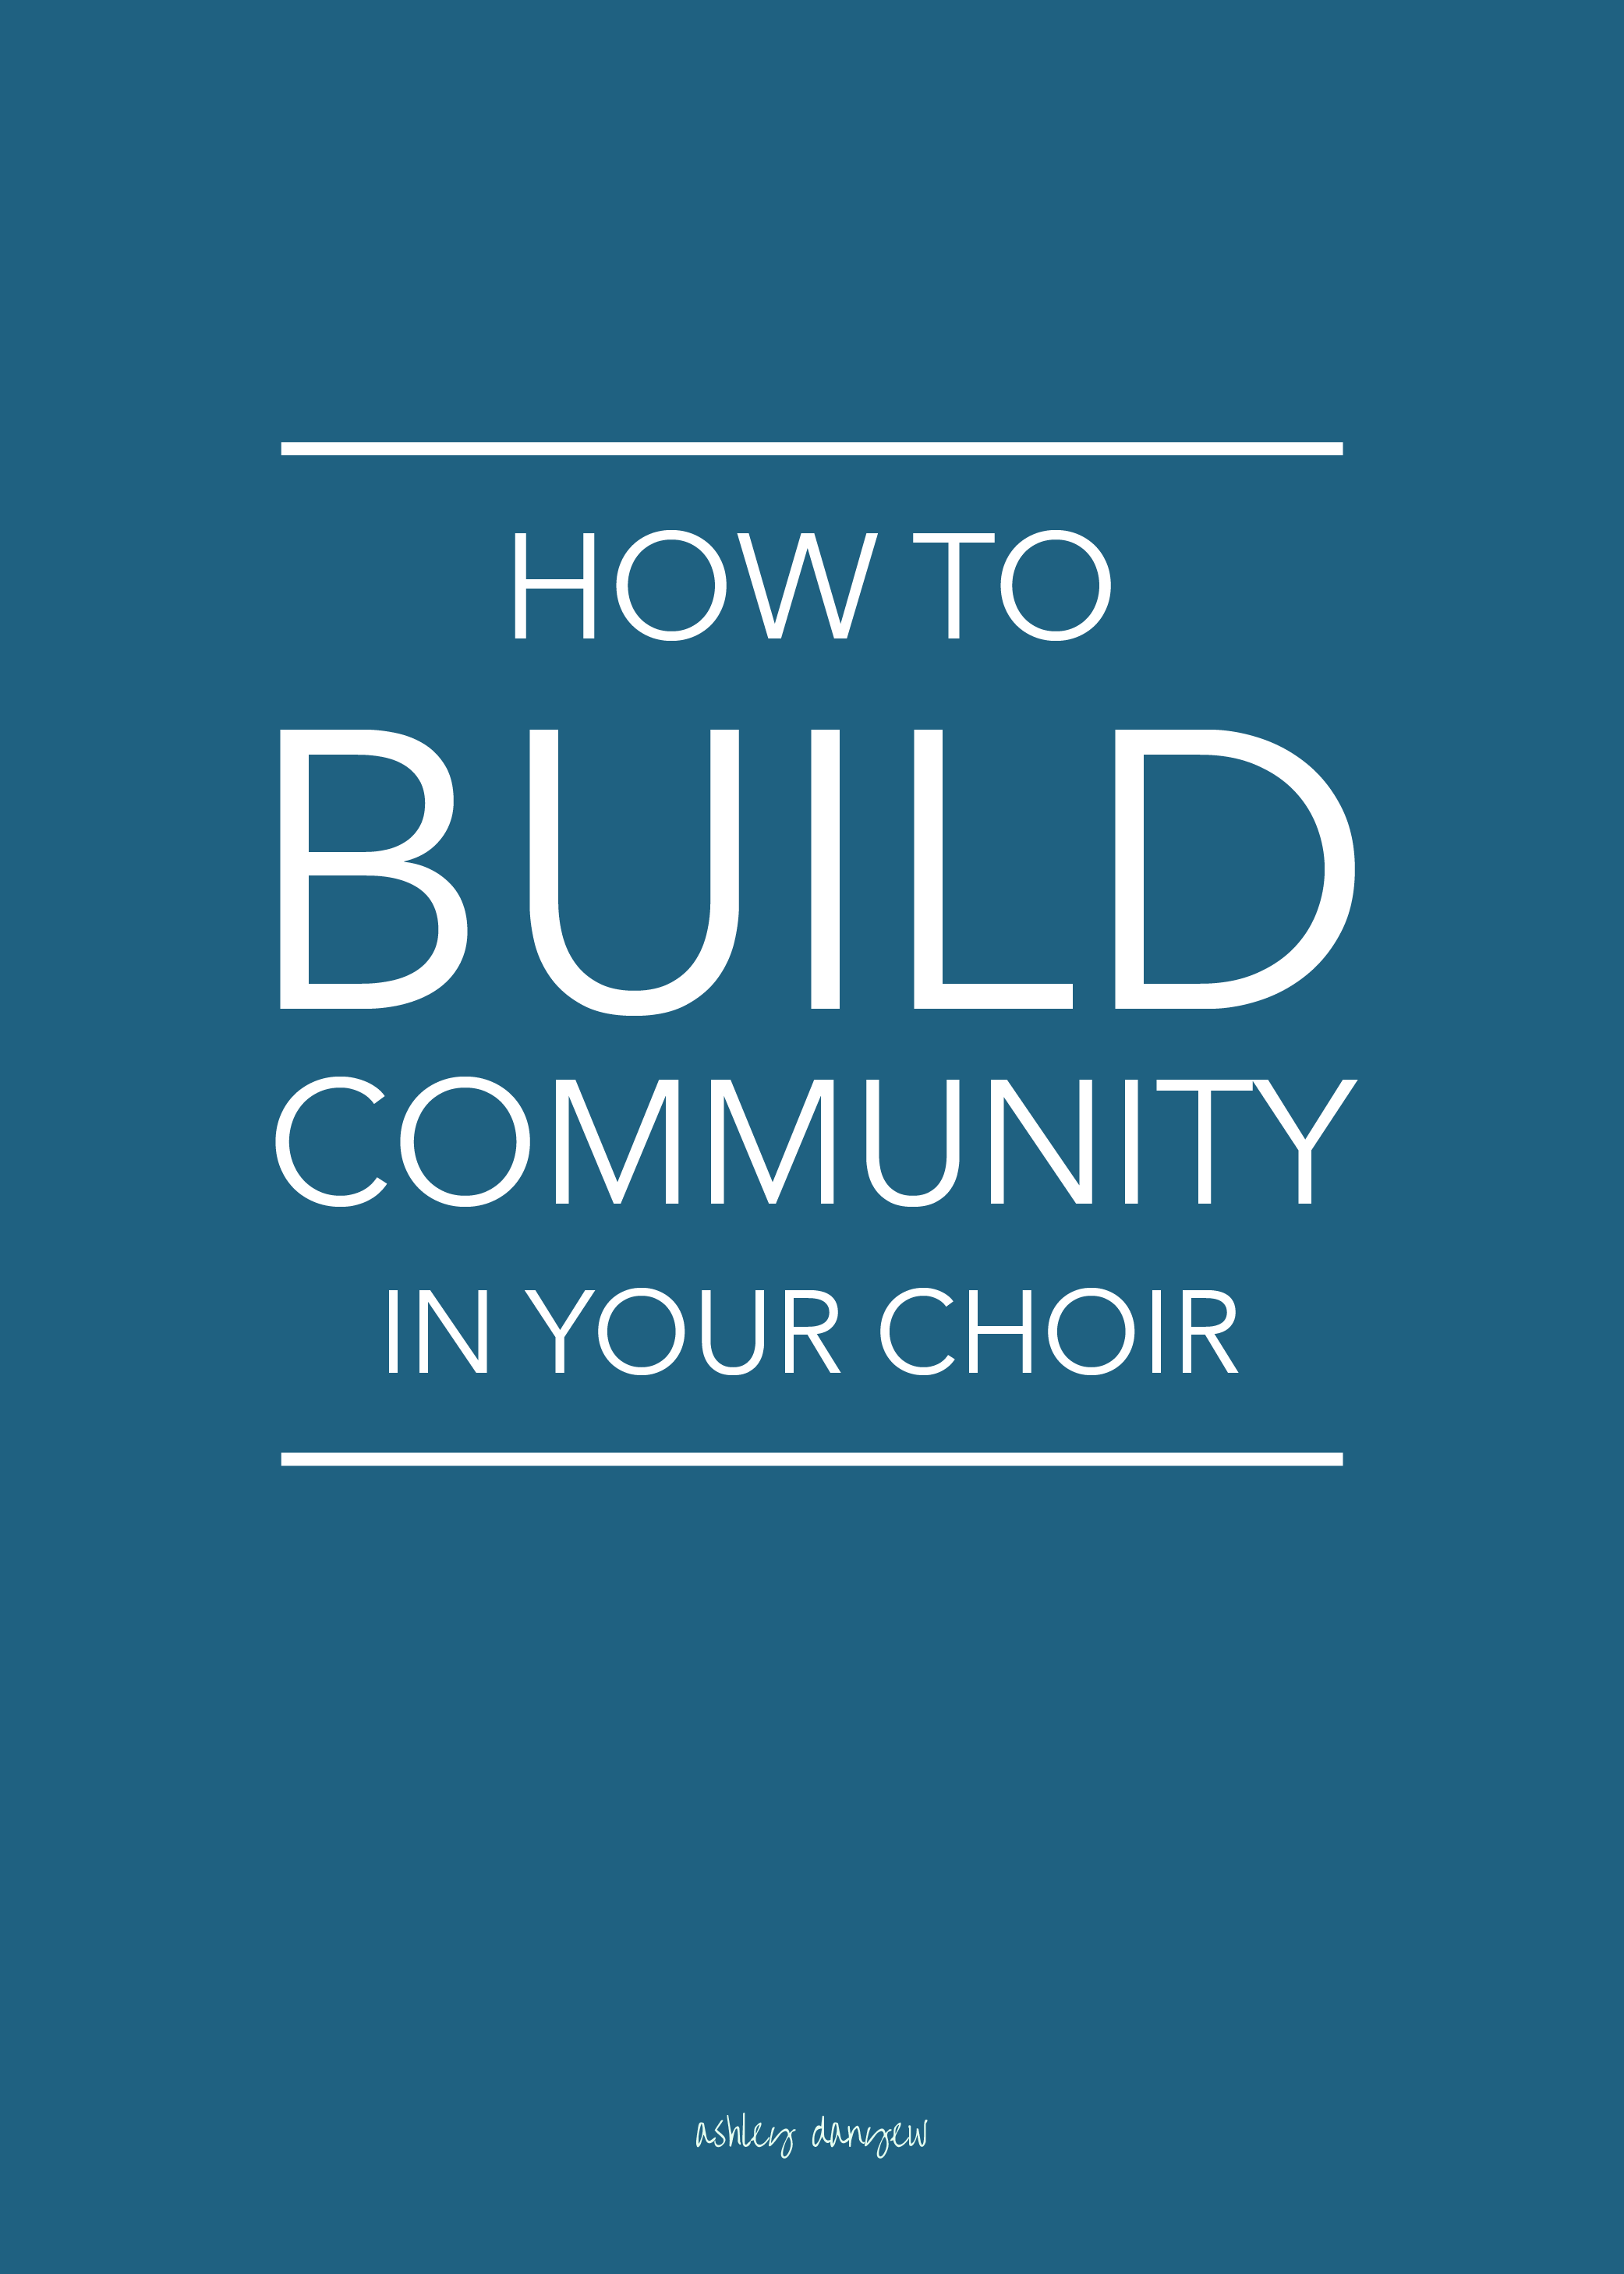 Copy of How to Build Community in Your Choir